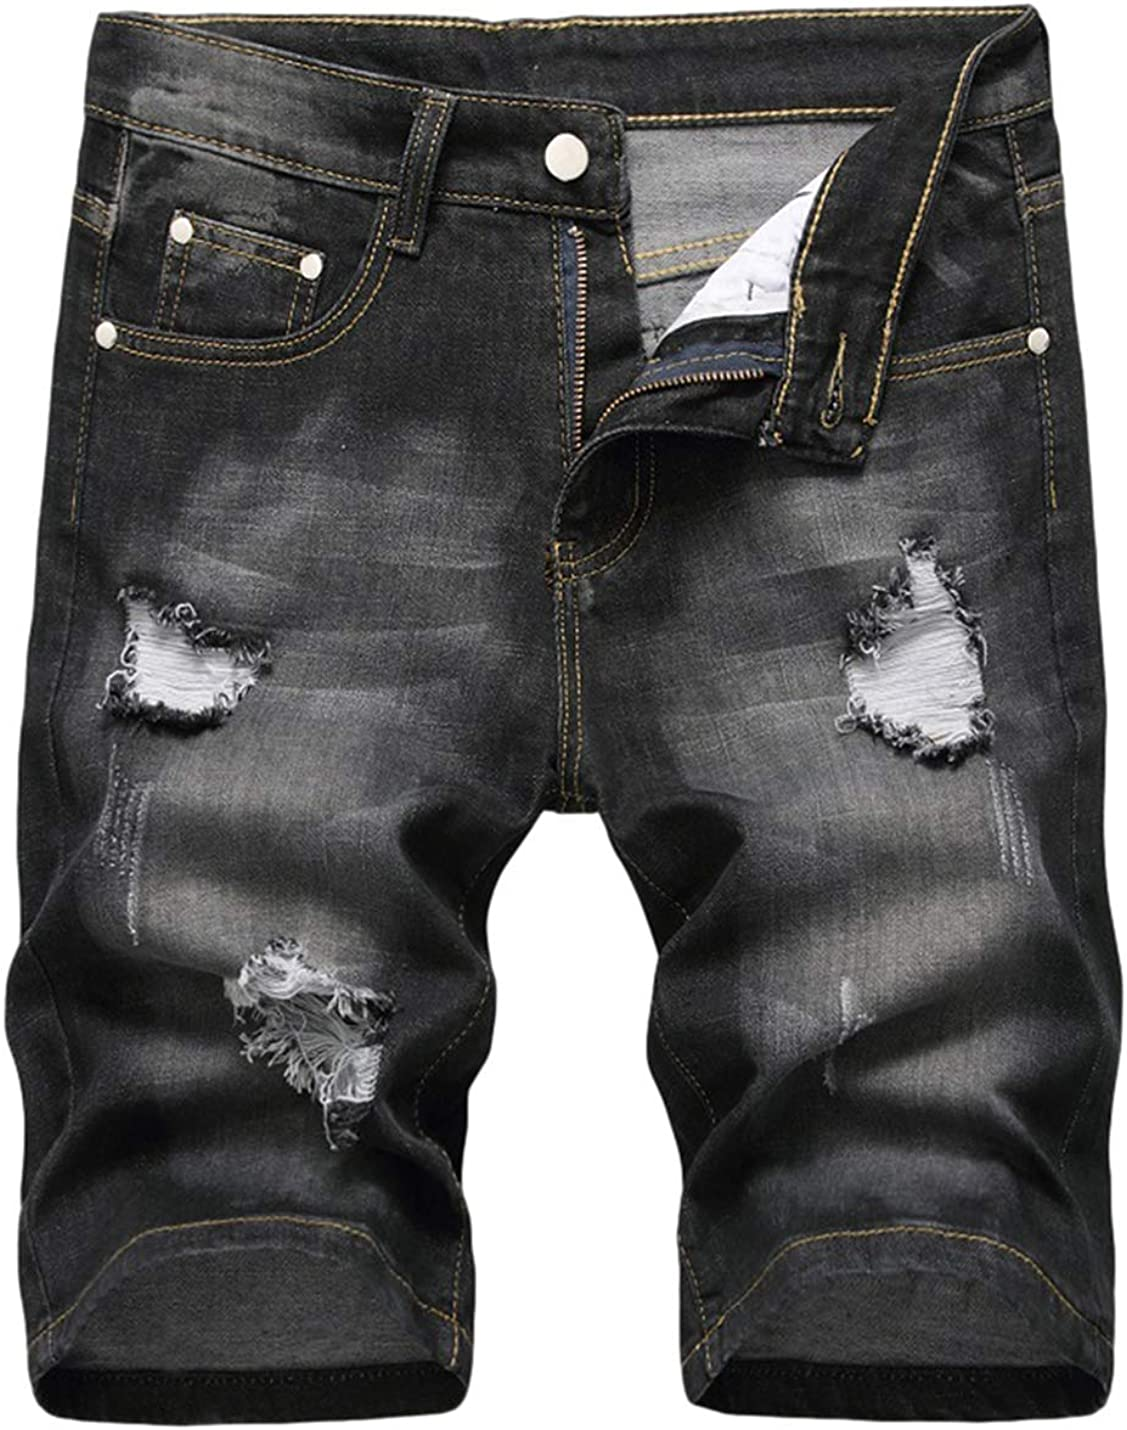 PUWEI Men's Casual Ripped Wash Denim Shorts Distressed Frayed Jean Short with Pockets